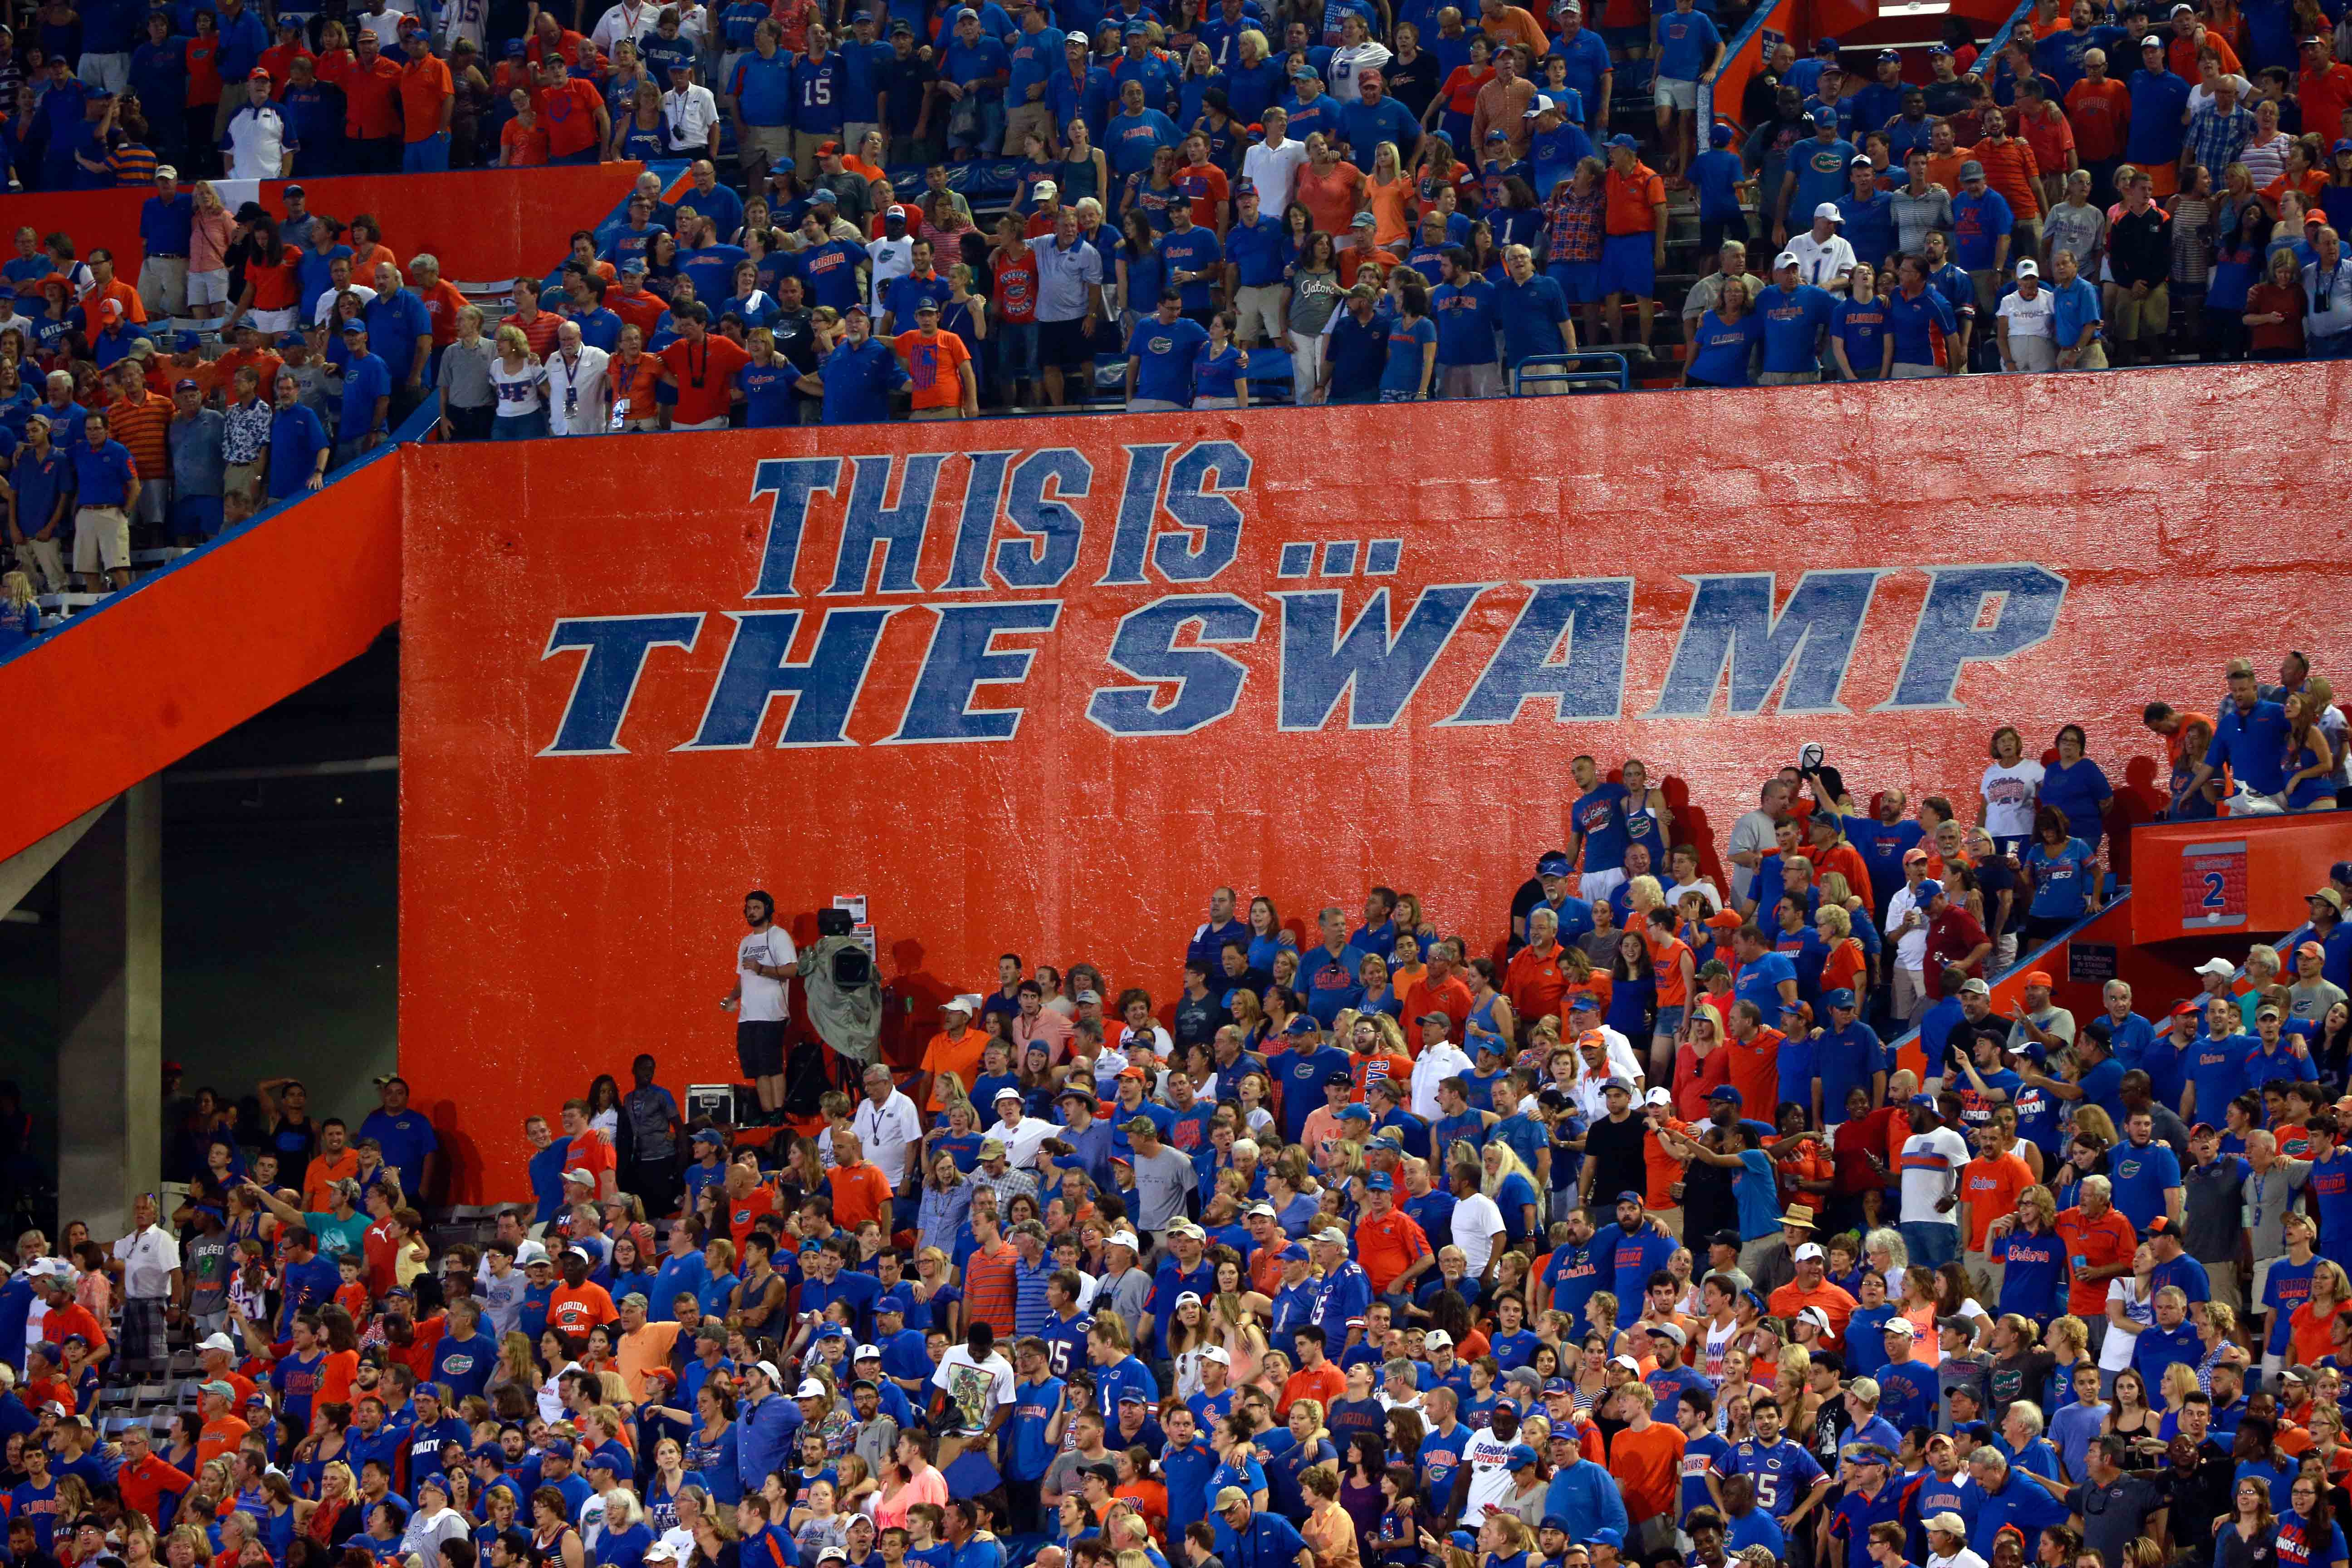 Florida Receivers Charged With Misdemeanors For Bb Gun Incident